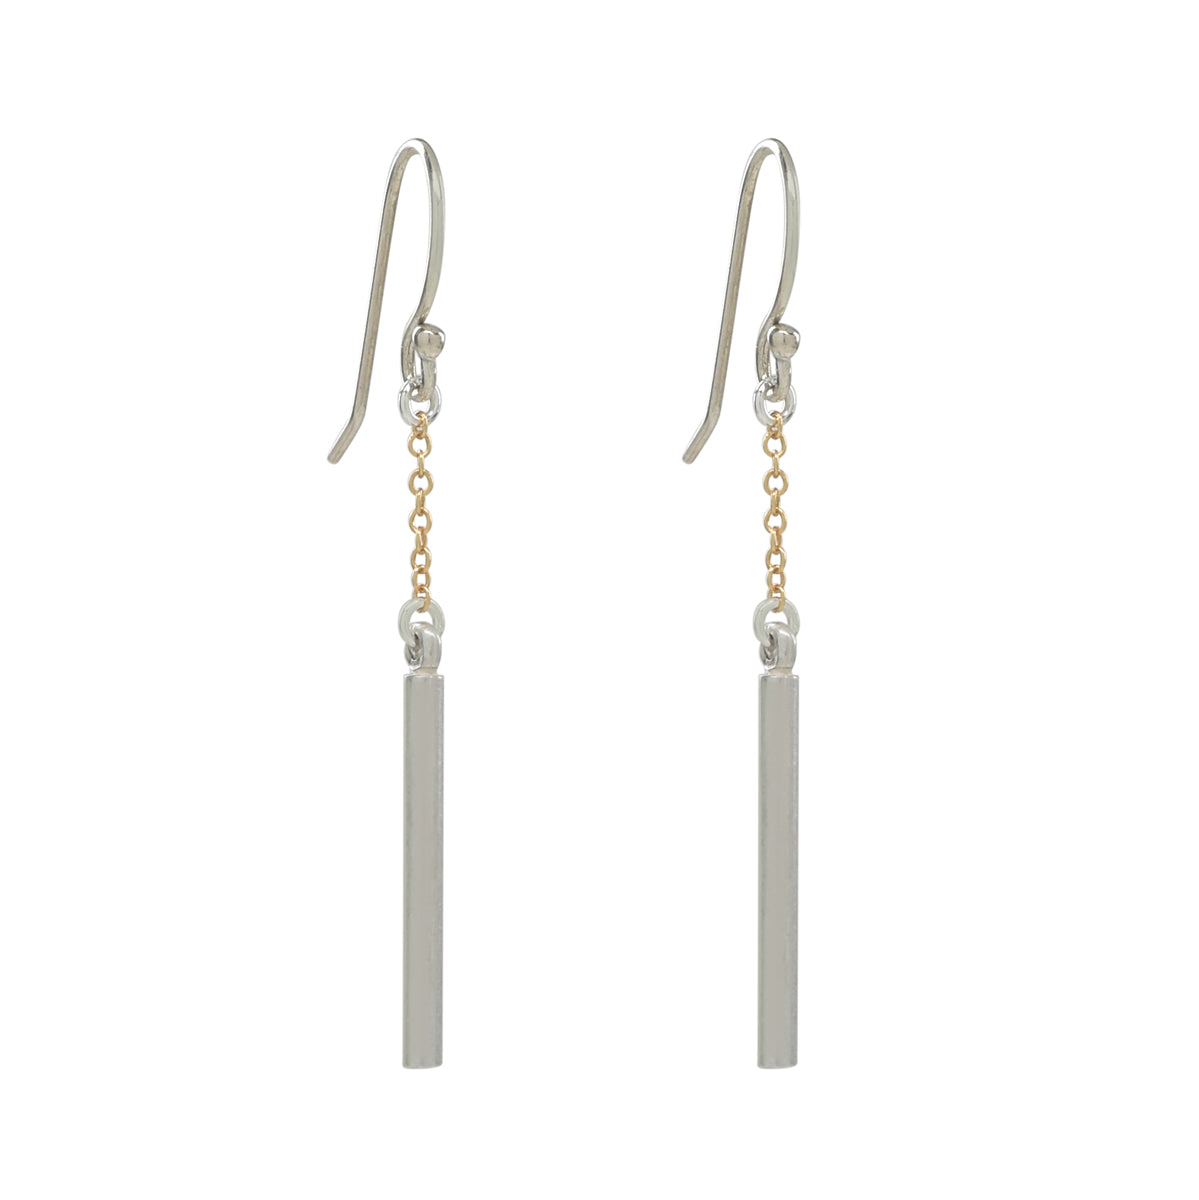 Silver Short Bar Earrings with Gold Chain